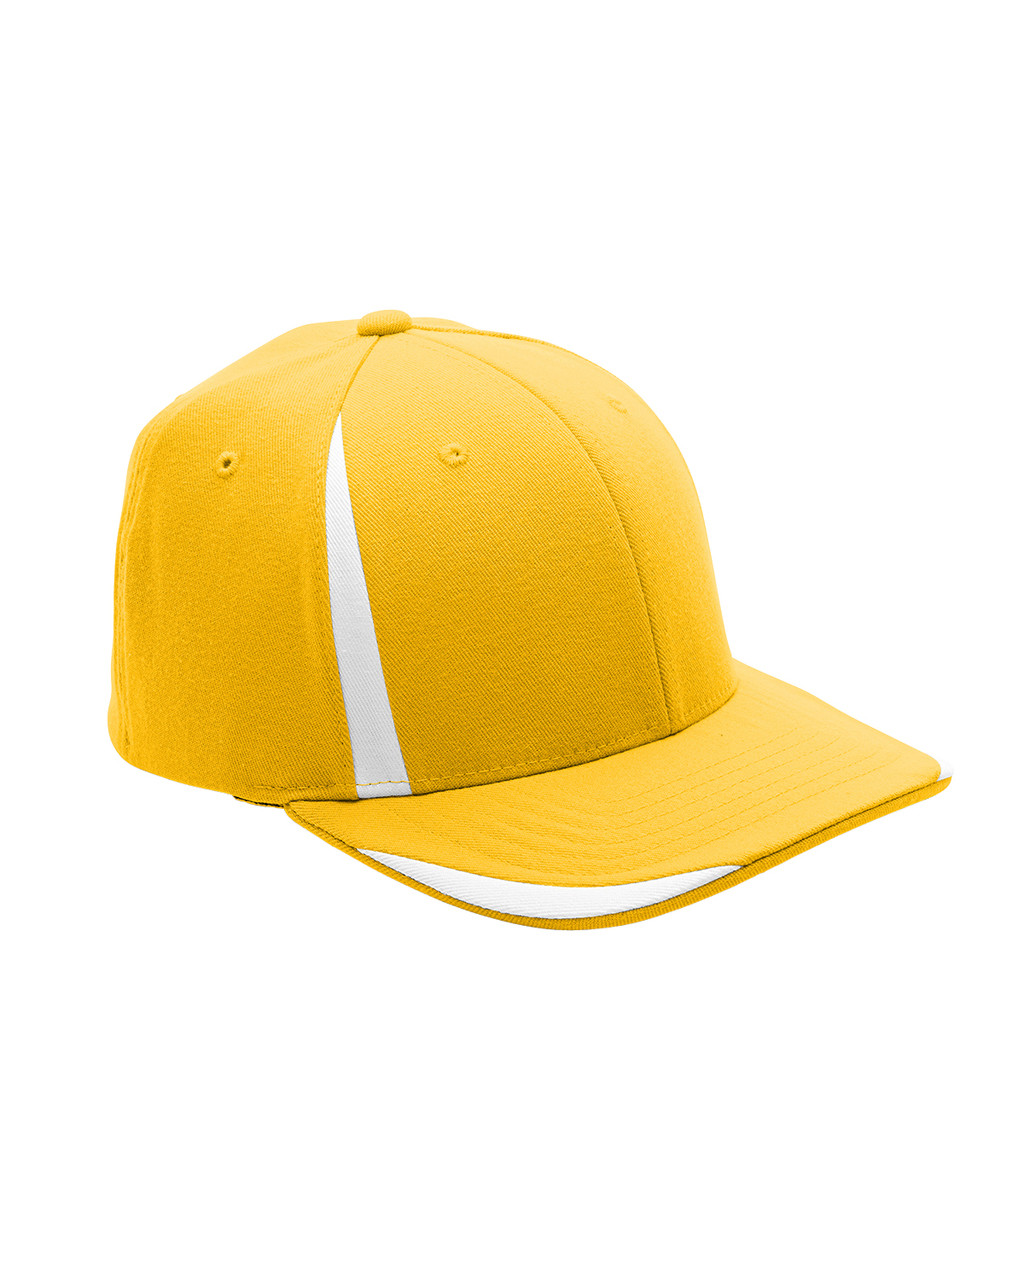 Athletic Gold/White - ATB102 Flexfit for Team 365 Pro-Formance Front Sweep Cap